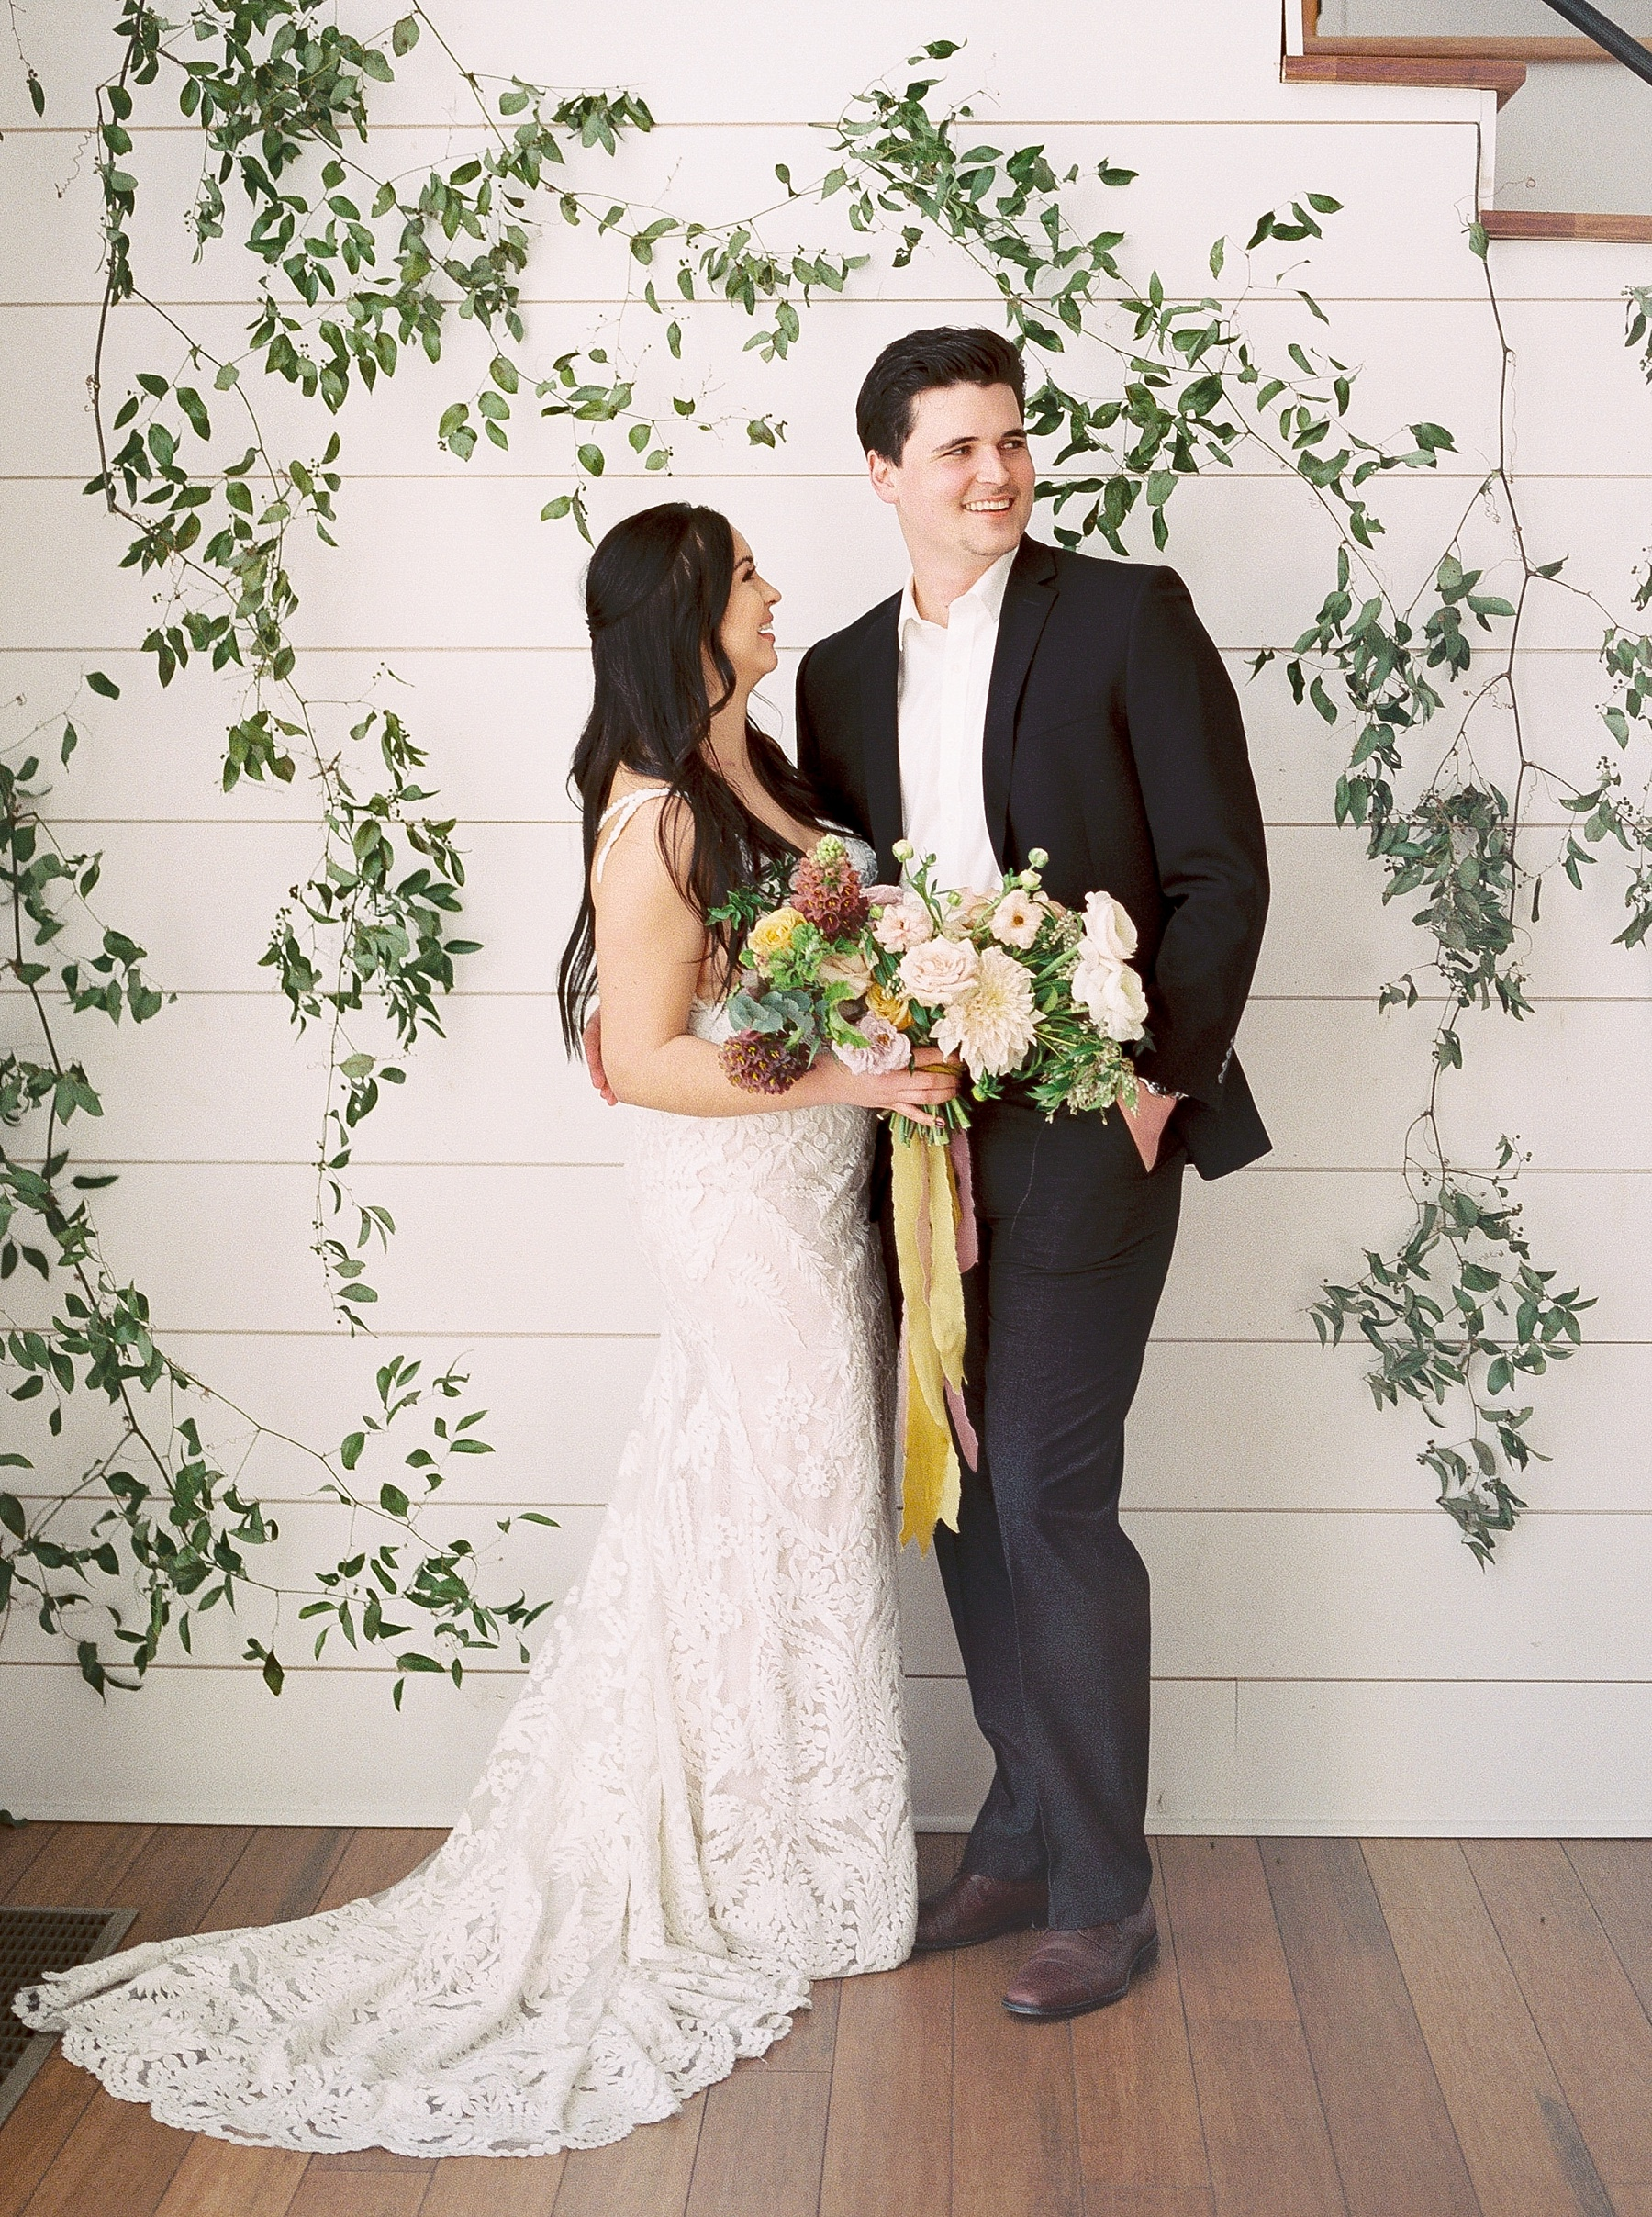 Intimate Lakeside Elopement at Emerson Fields All White Wedding Venue by Kelsi Kliethermes Photography Best Missouri and Maui Wedding Photographer_0023.jpg